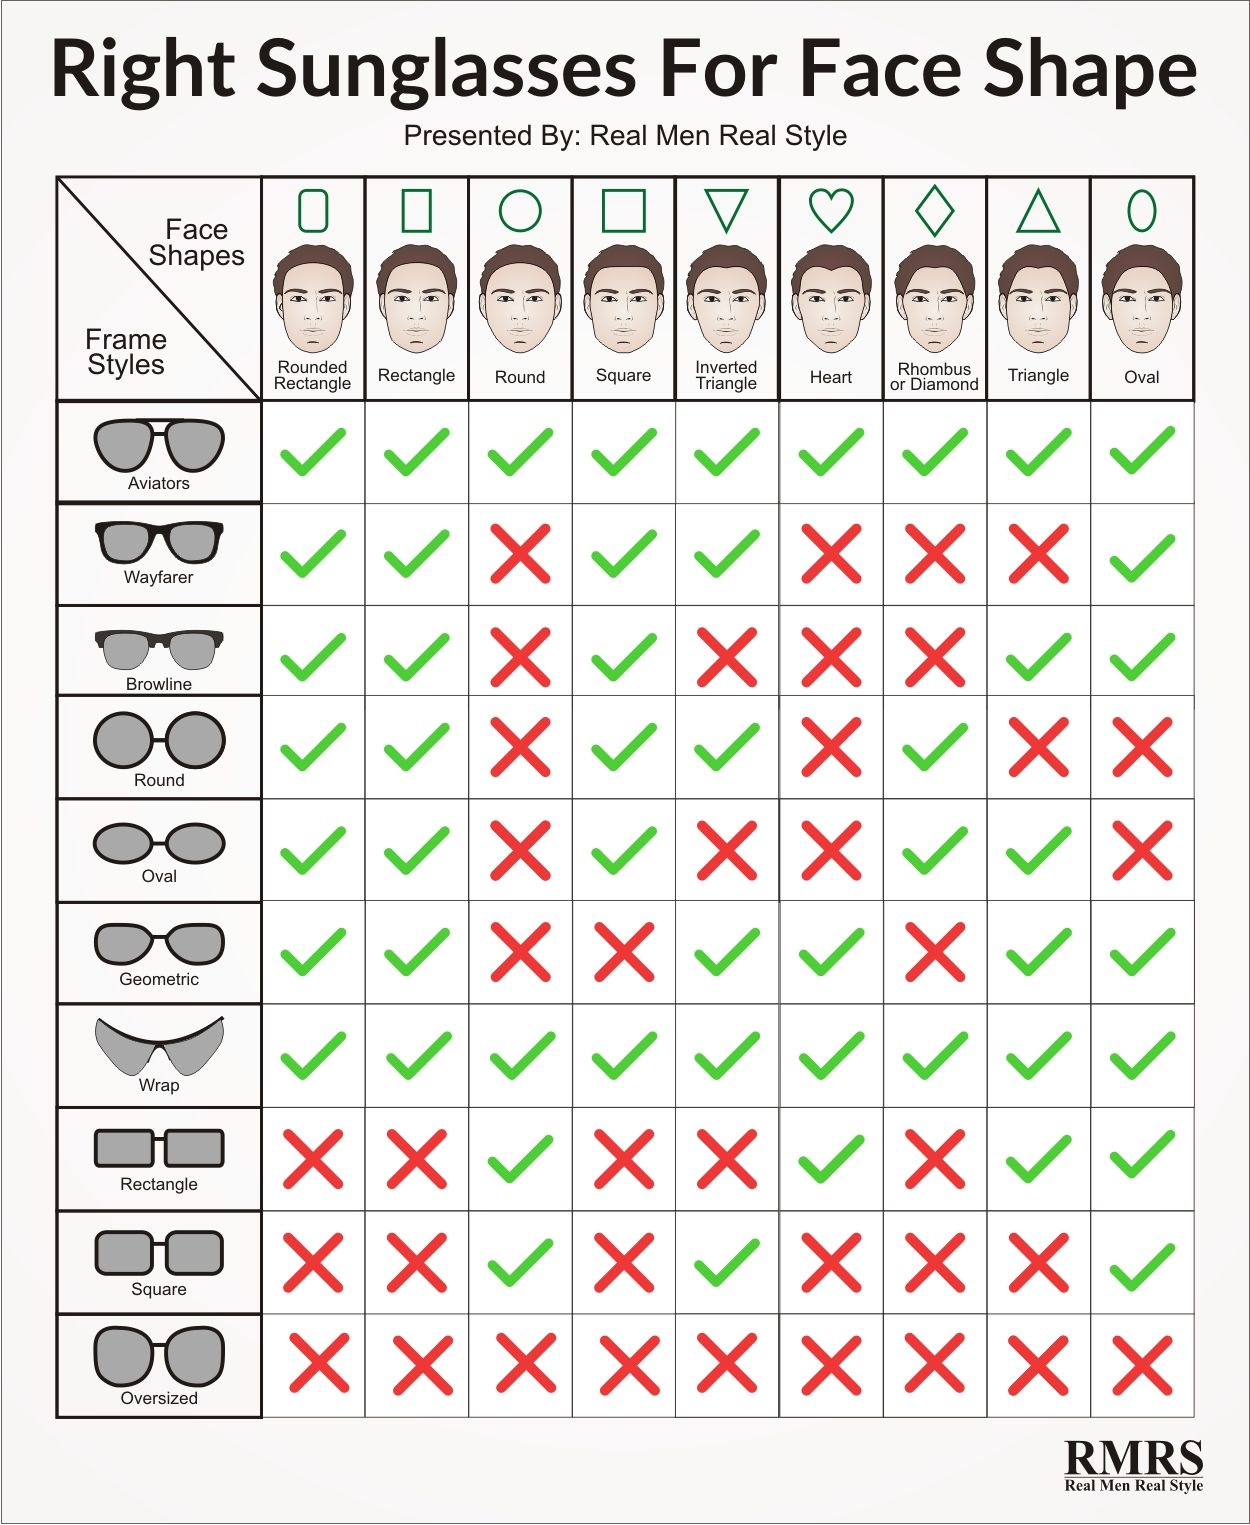 The Right Sunglasses For Your Face Shape Infographic ...